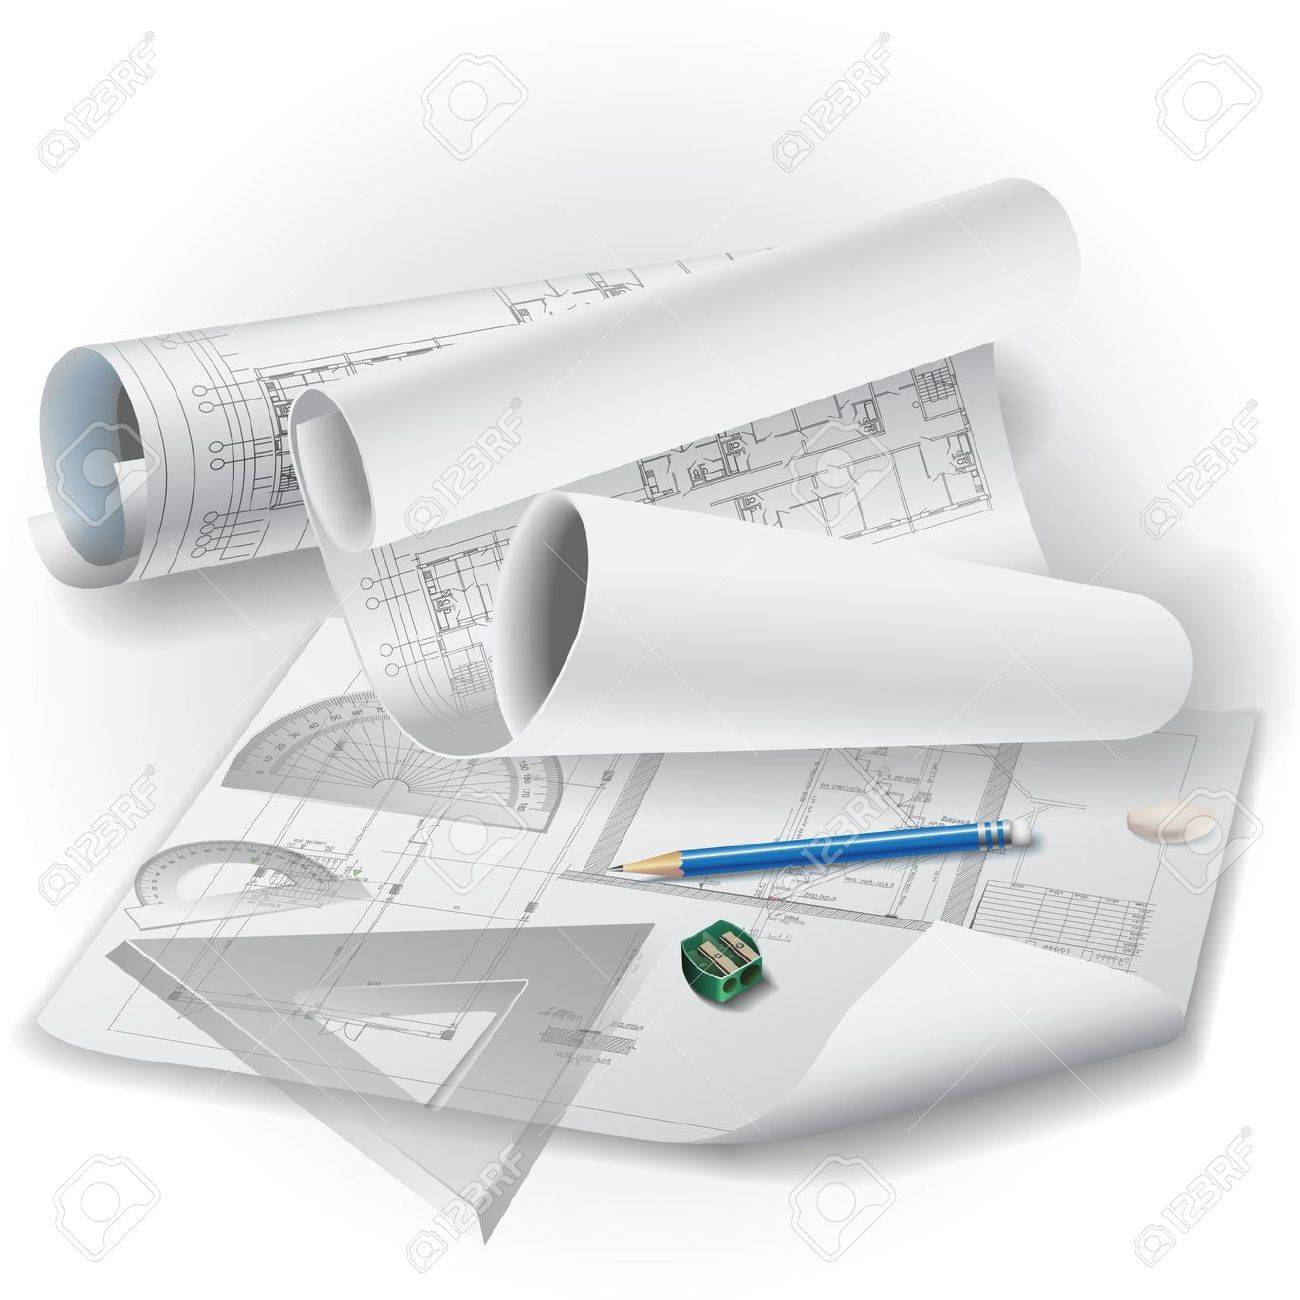 Architectural Background With Drawing Tools And Rolls Of Drawings